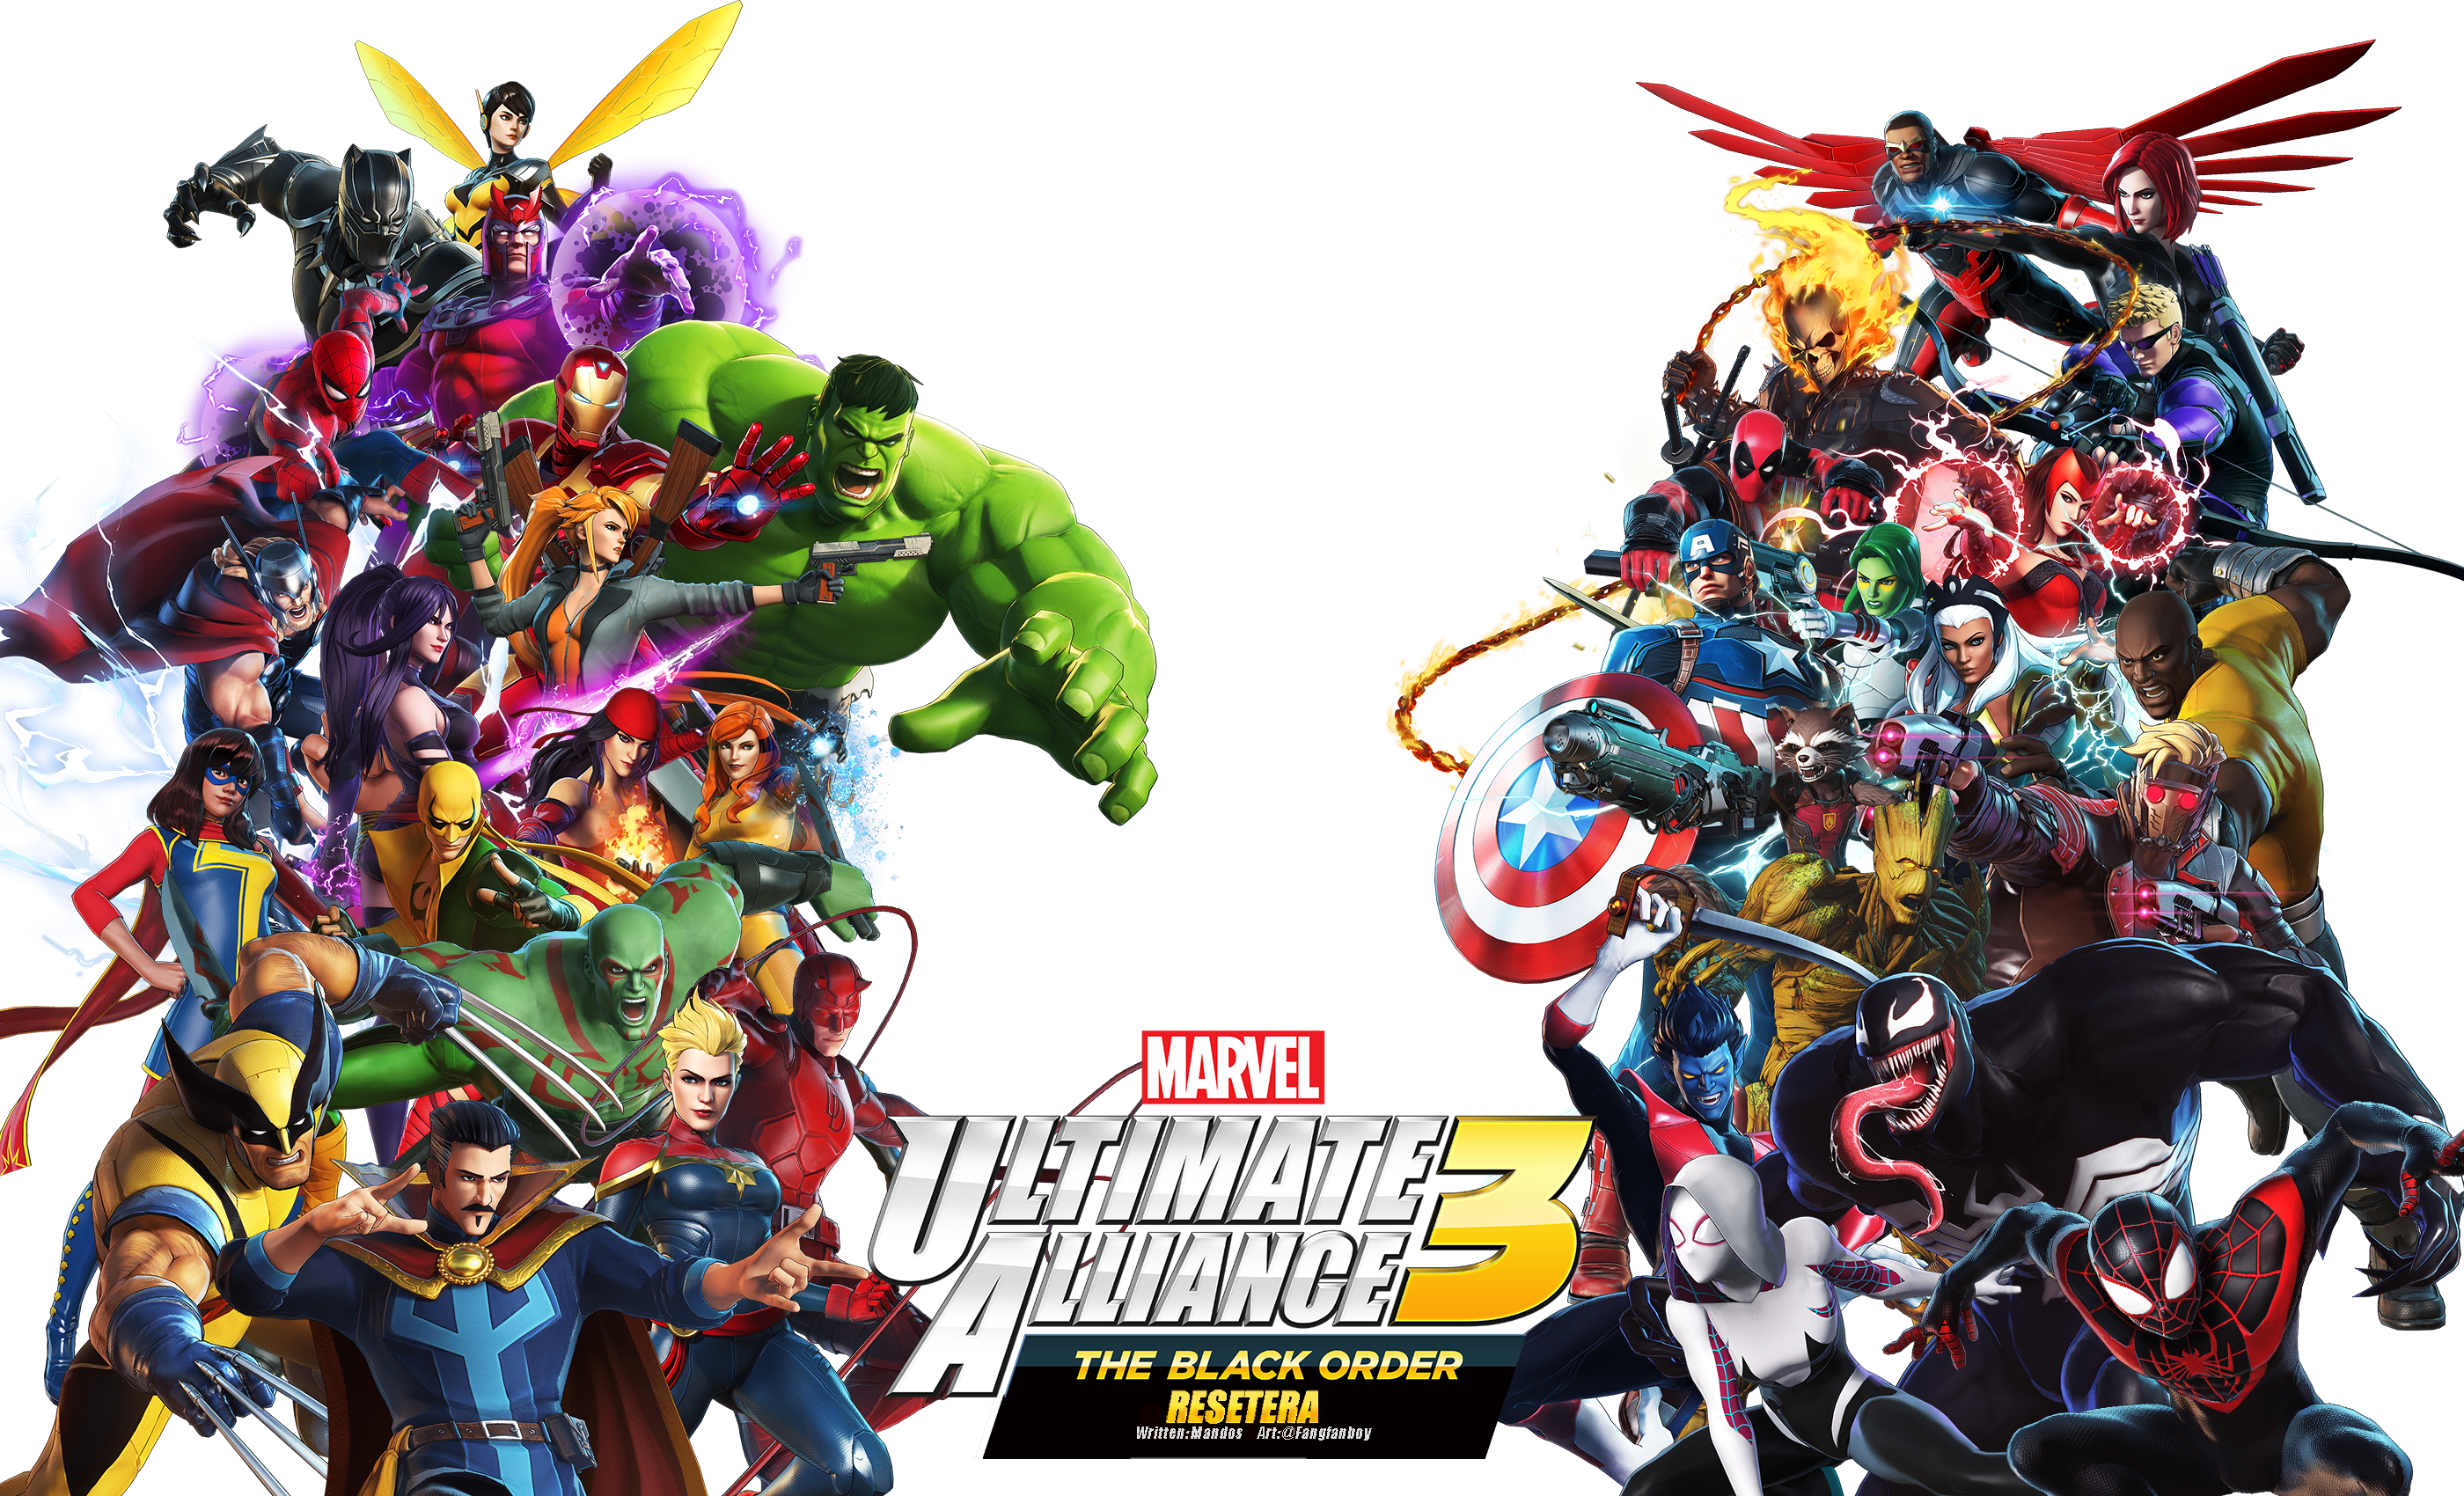 Marvel Ultimate Alliance 3 Wallpaper Posted By Michelle Anderson